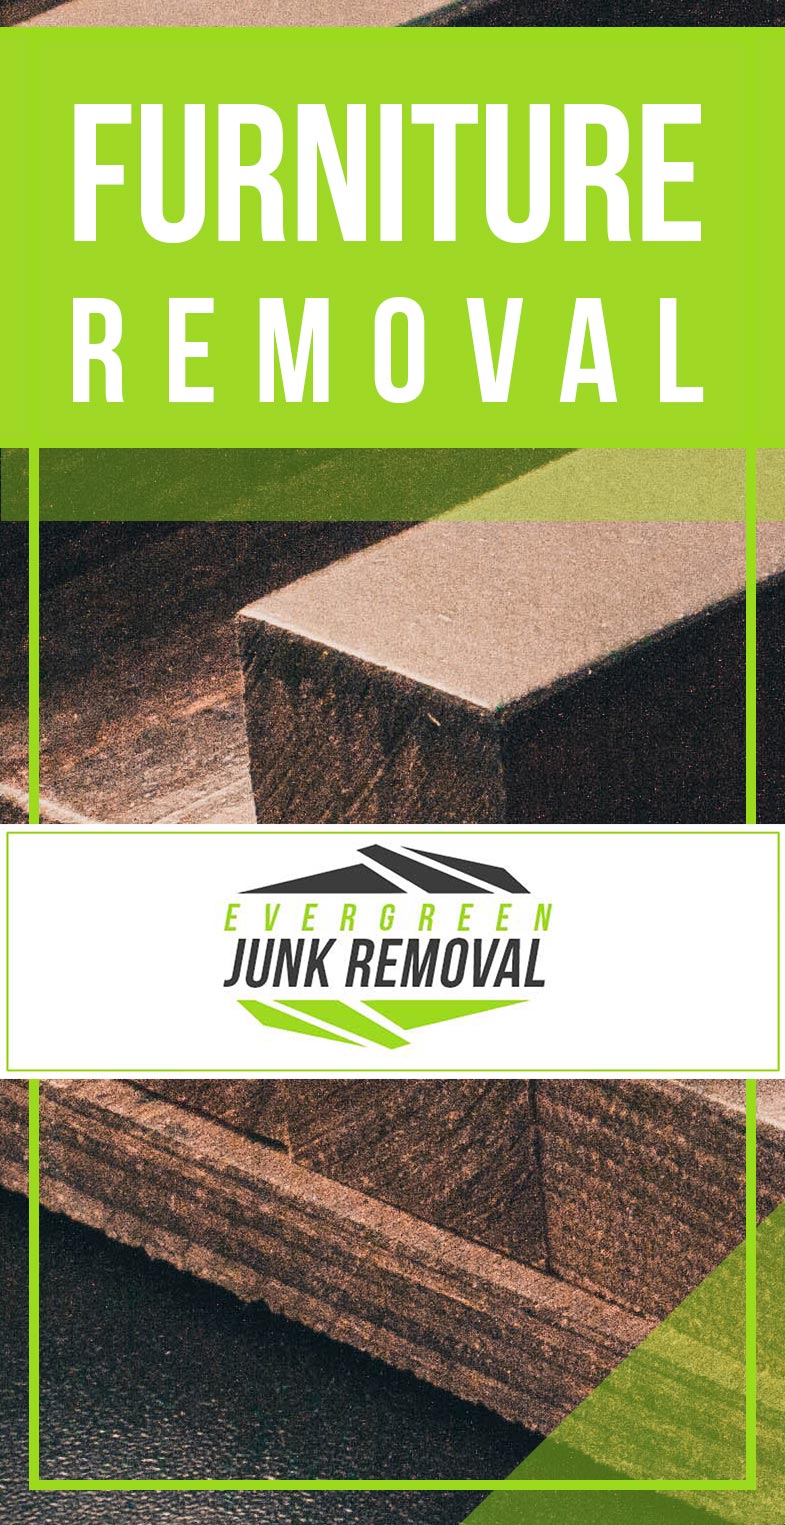 Duvall Furniture Removal